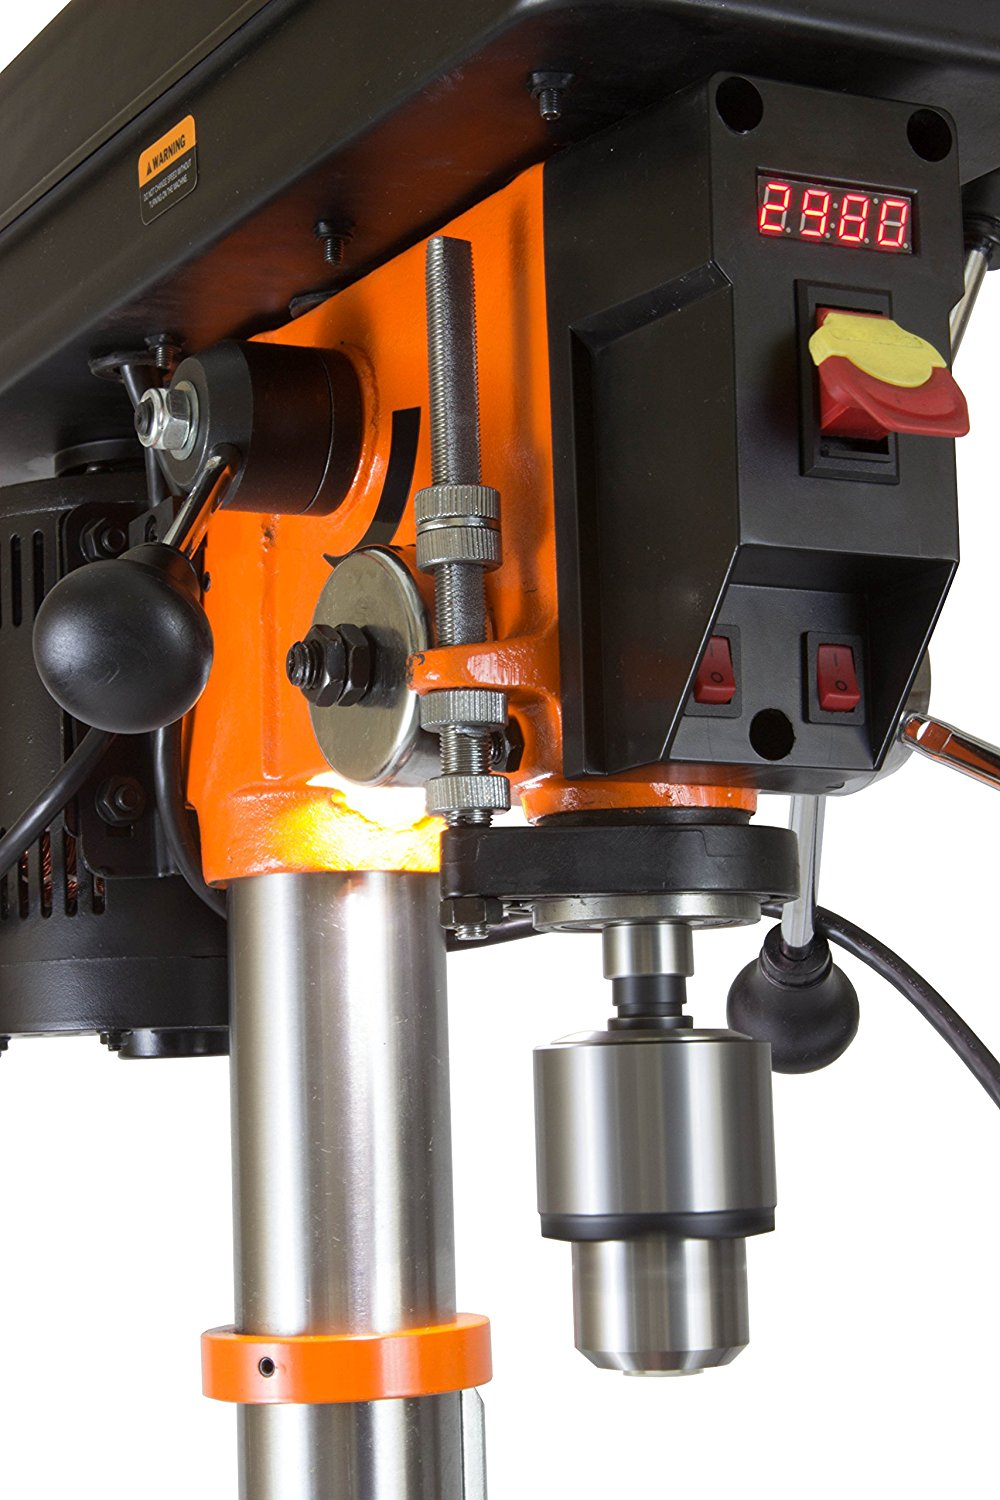 WEN drill press review